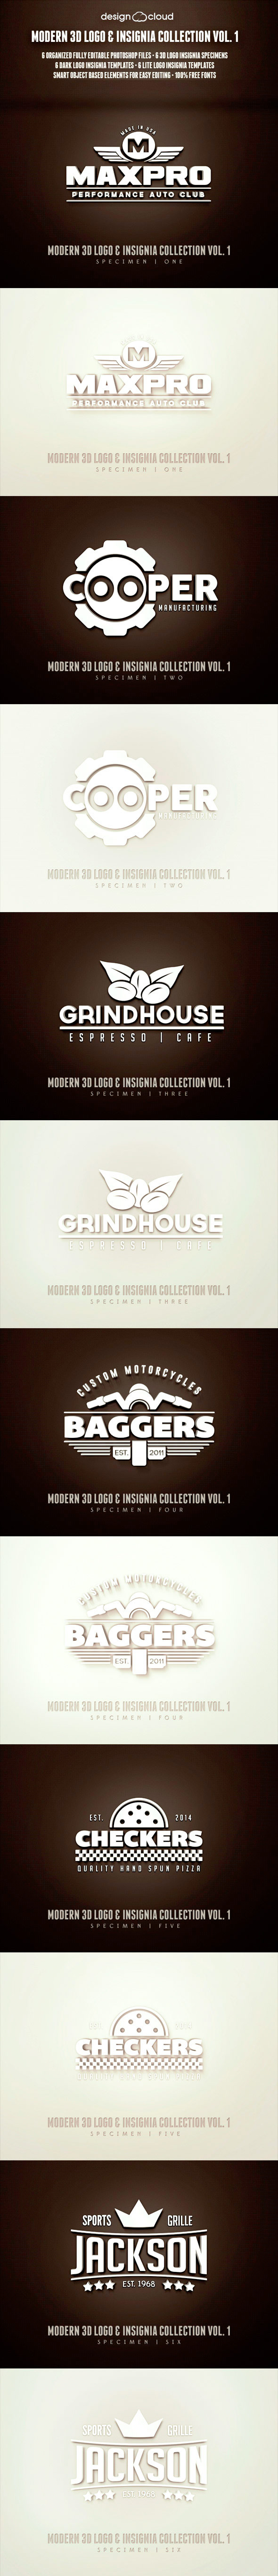 GraphicRiver Modern 3D Logo Insignia & Badge Templates Vol 1 8884413